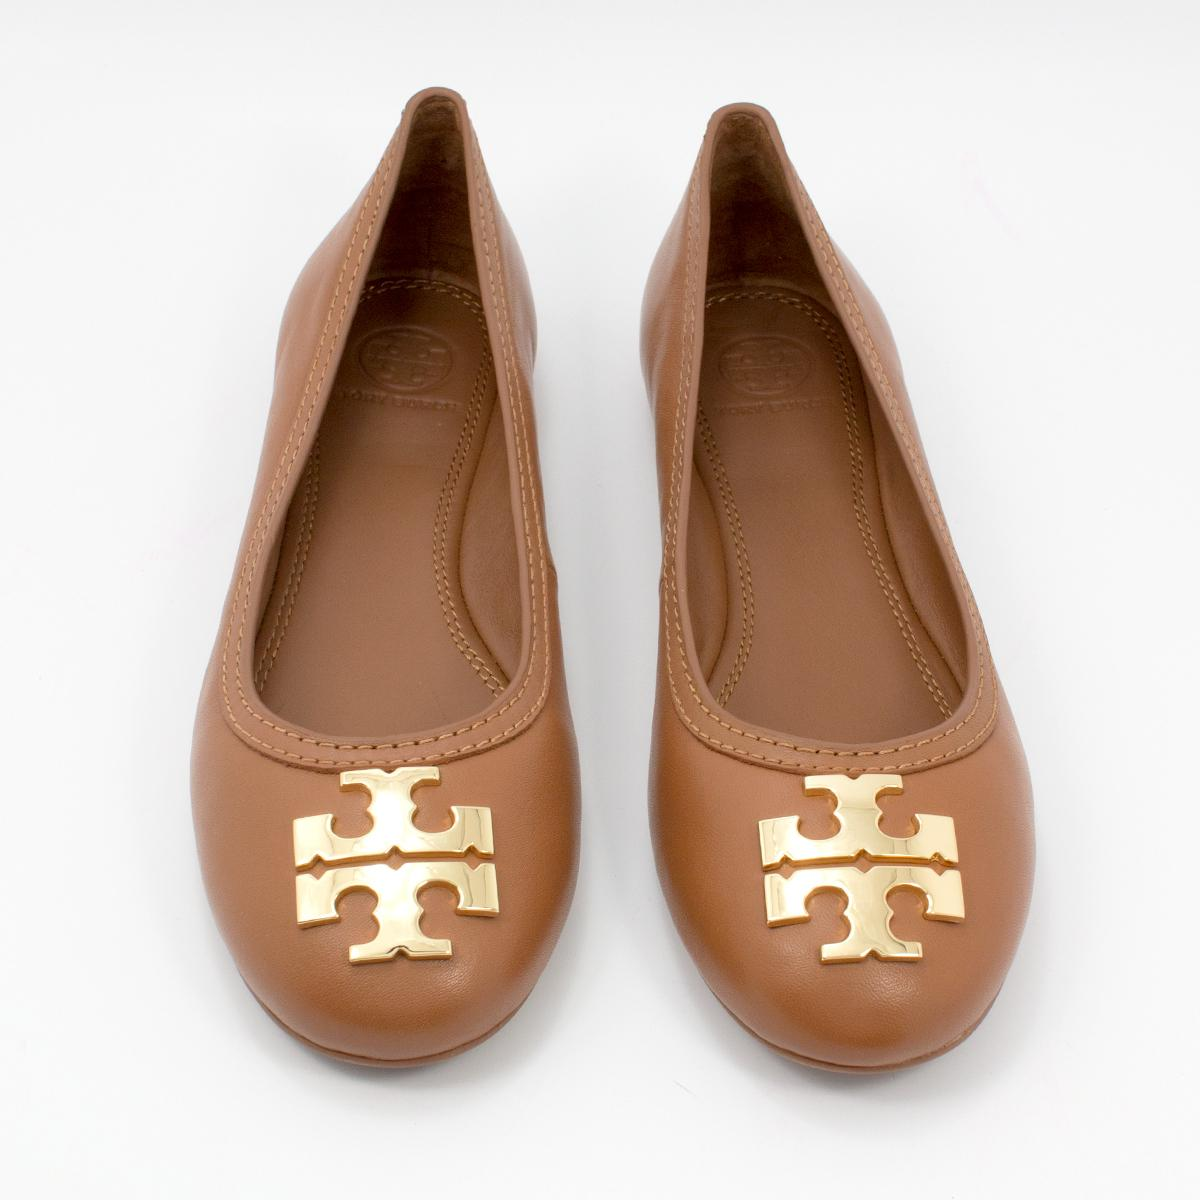 3110cf2771796 ... norway tory burch 34289 190041396993 royal tan gold flats. 12345678  d6eb6 f18a0